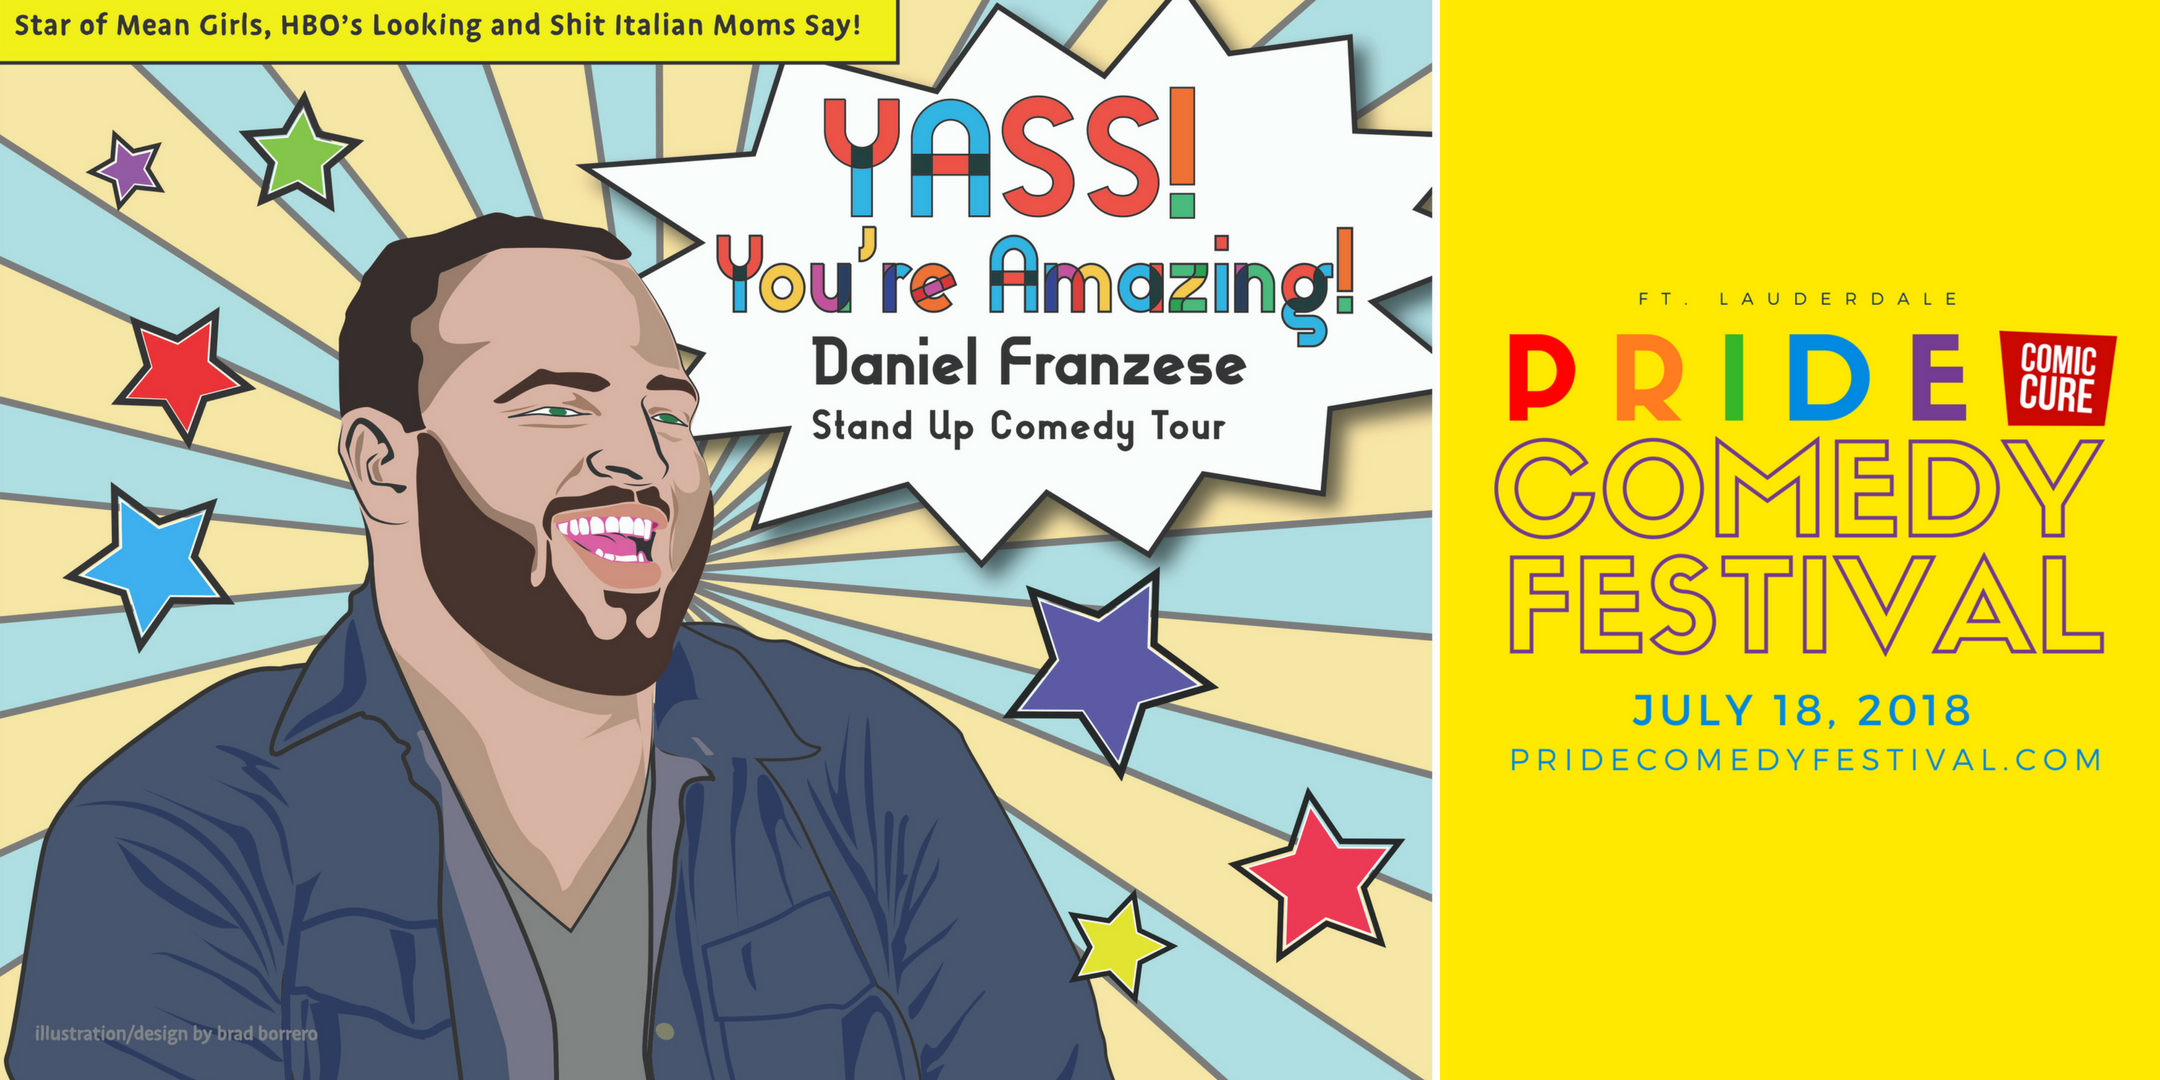 Pride Comedy Festival 2018 – Fort Lauderdale